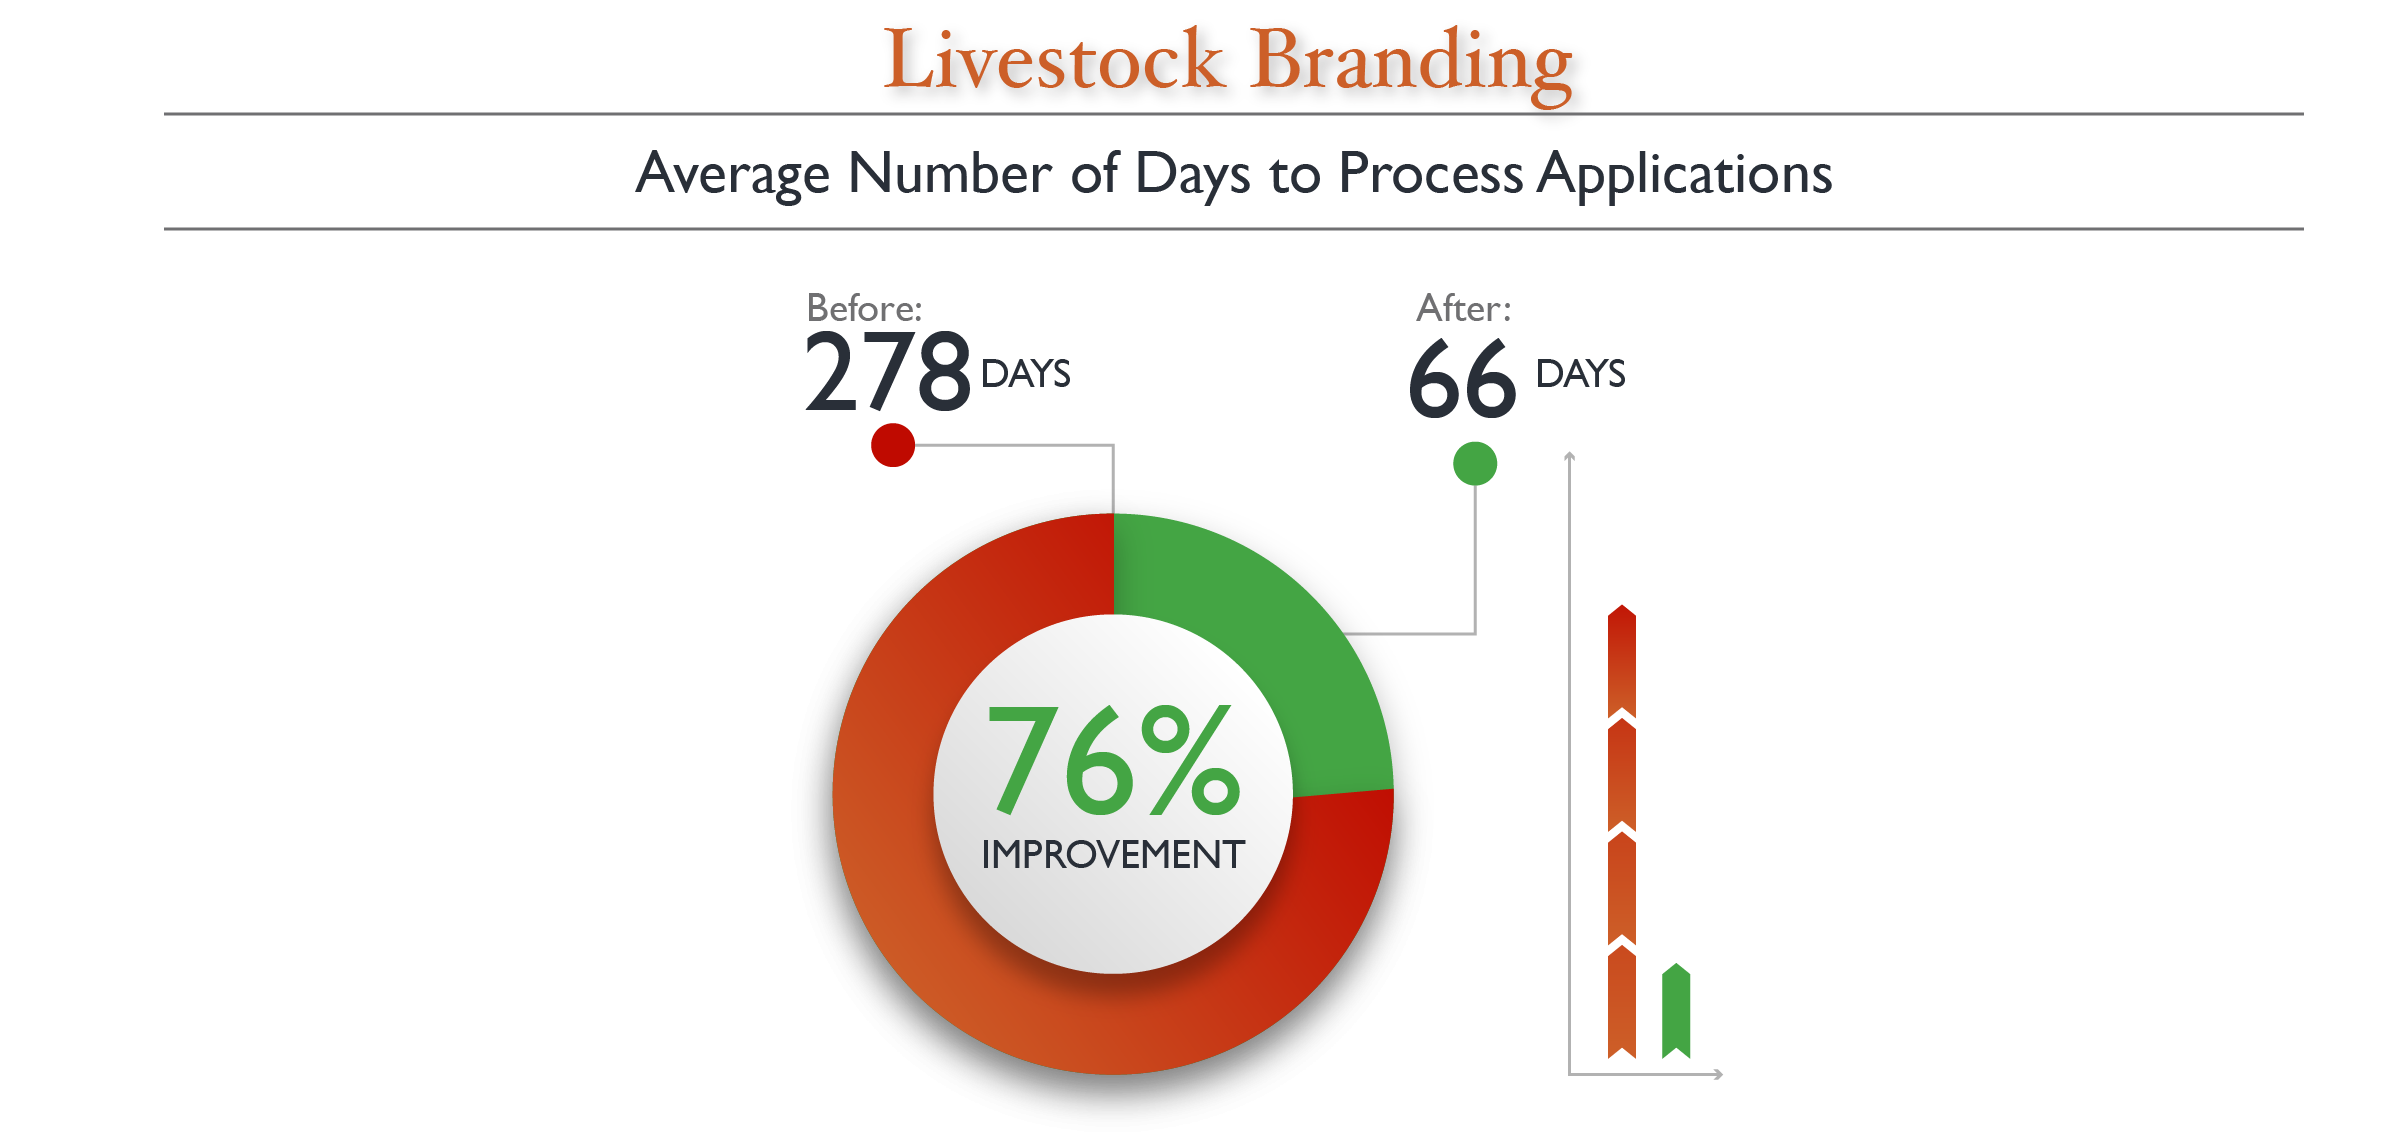 Average number of days to process an application reduced by 77%